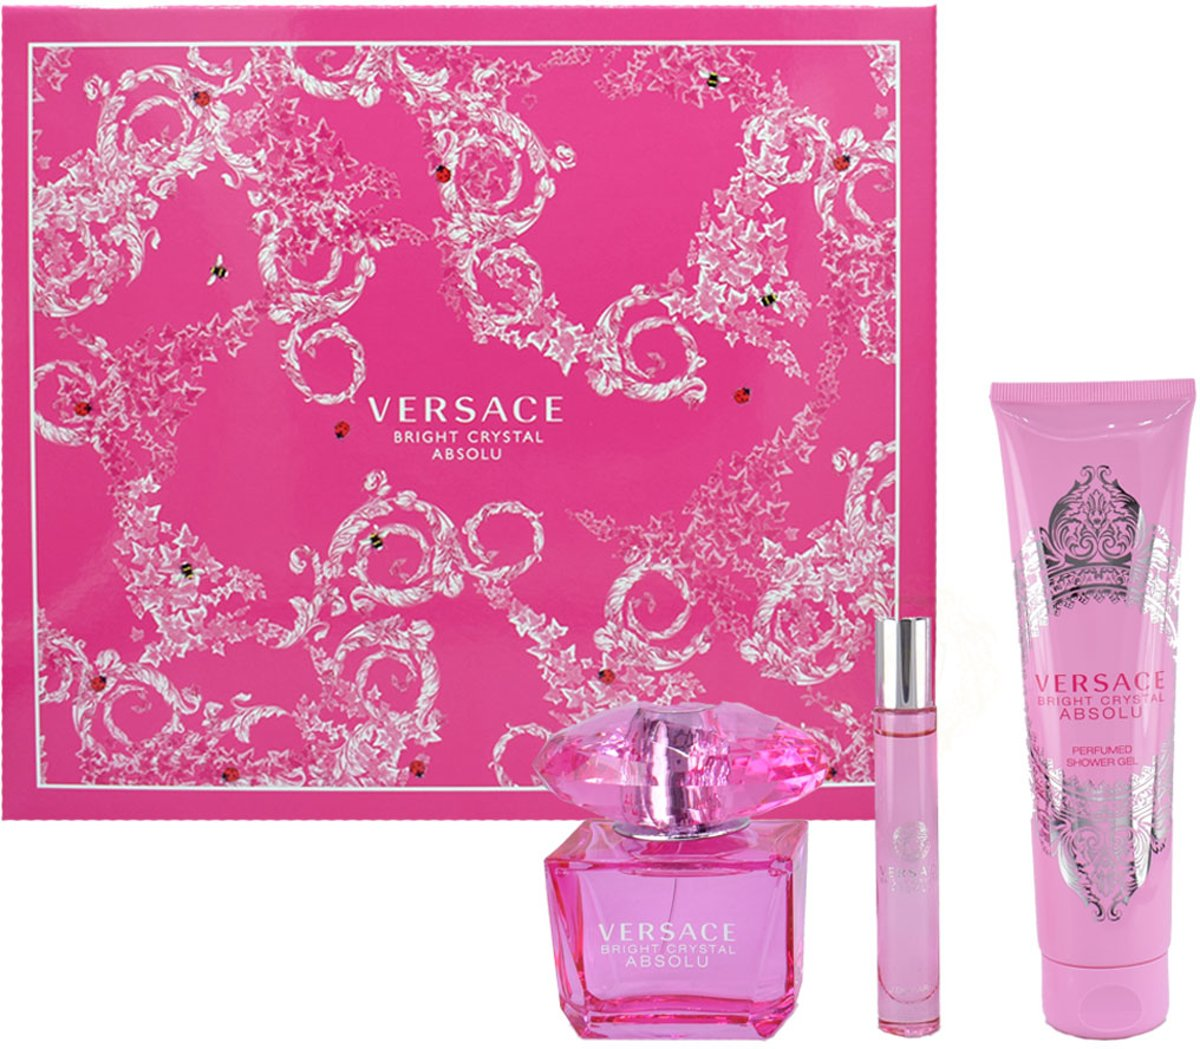 Versace Bright Crystal Absolu edp 90ml+Showergel 150ml+10ml